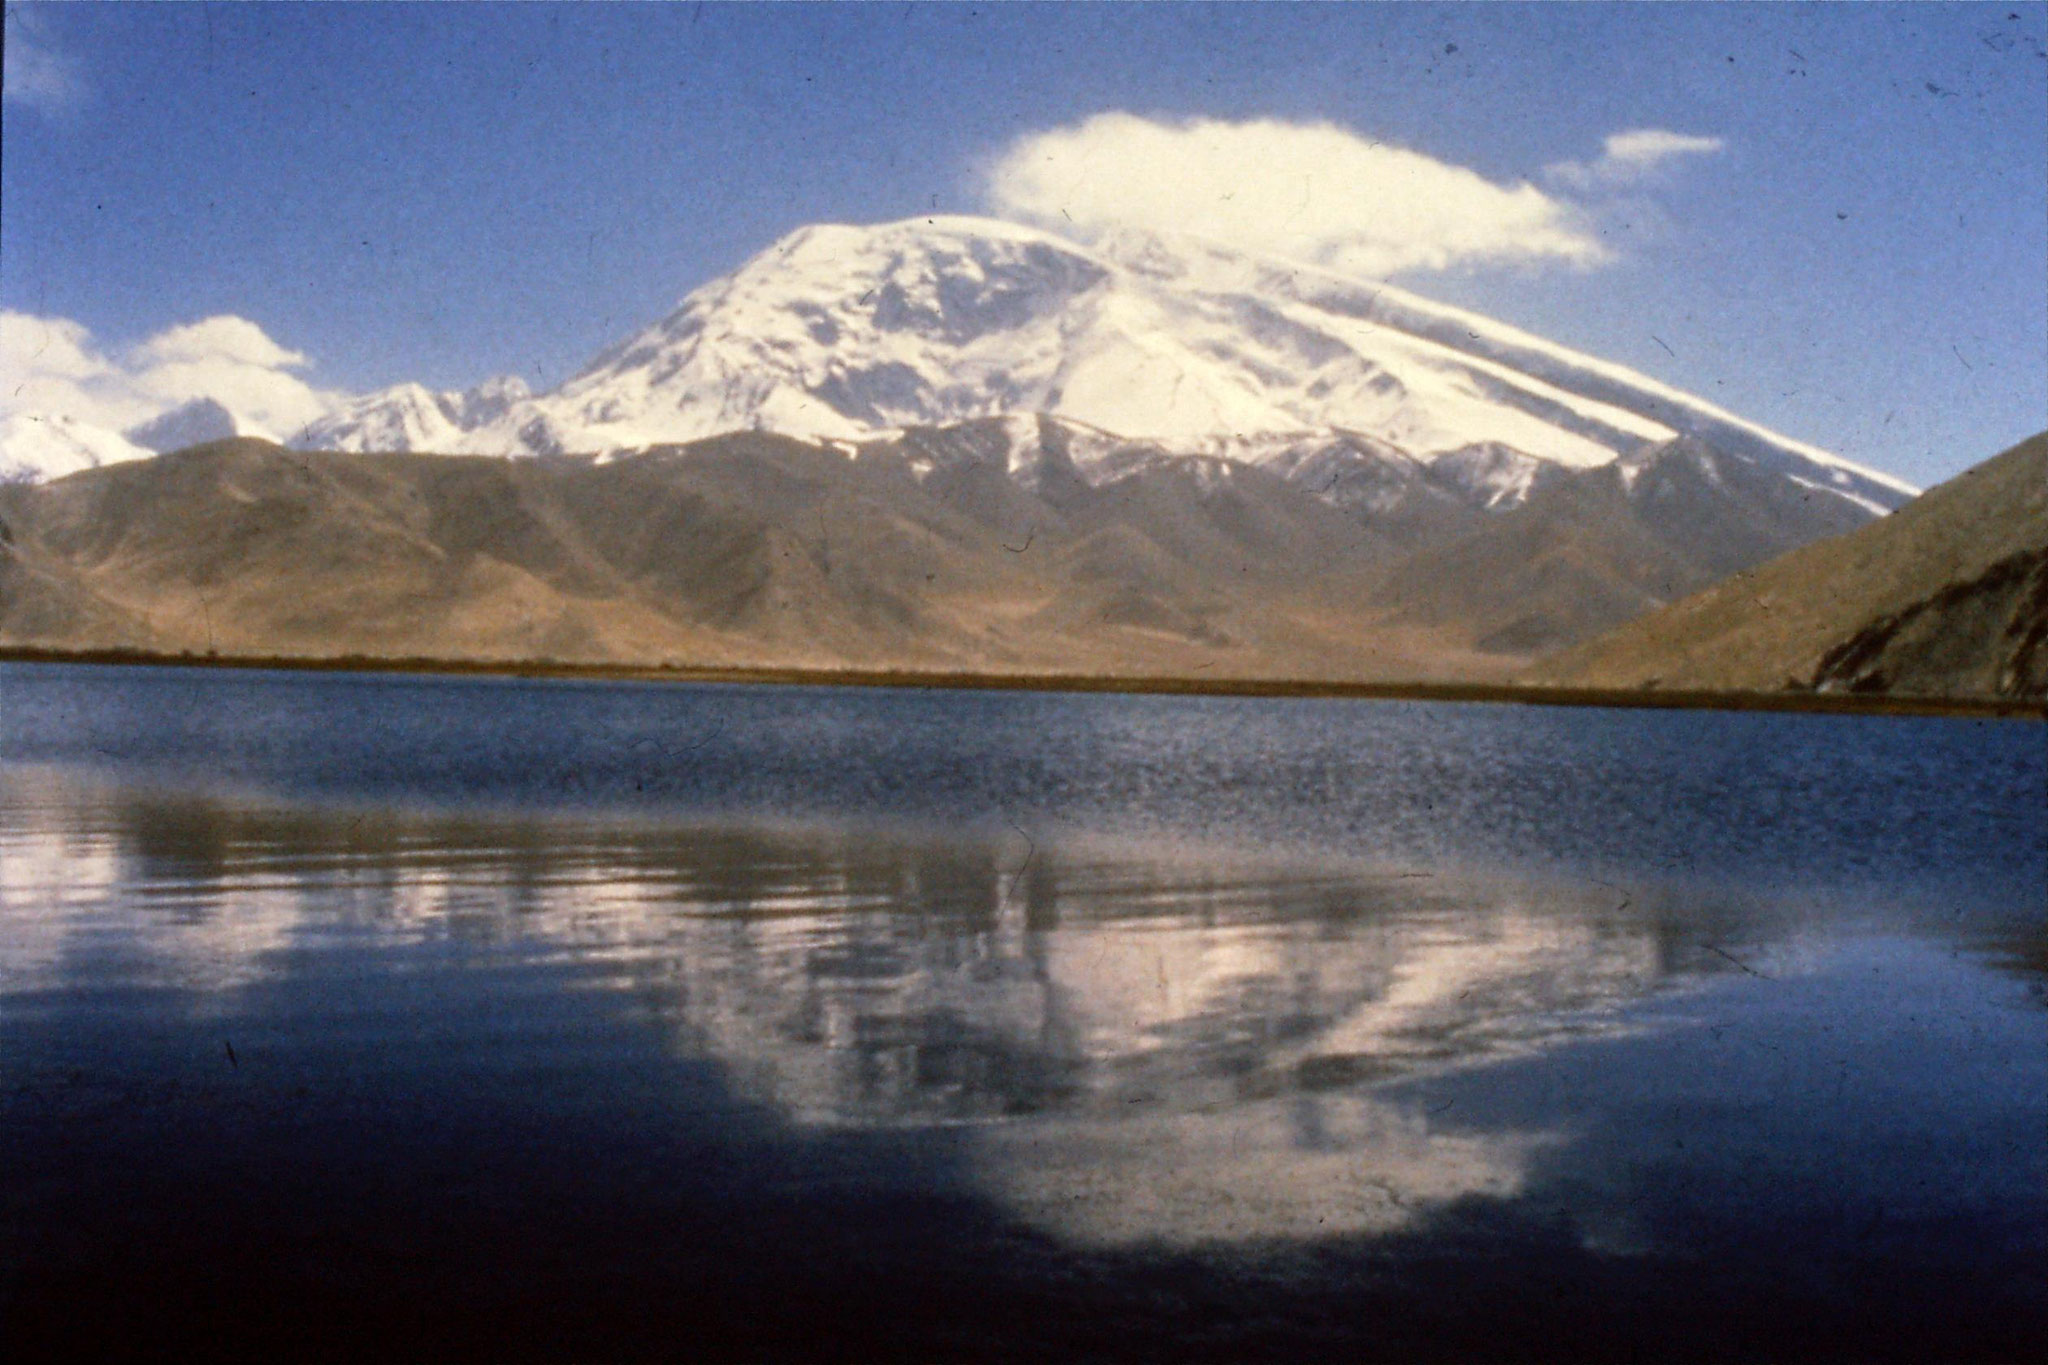 11/9/1989:25: Karakoram Highway, at Karakuli Lake, Mt Muztagta